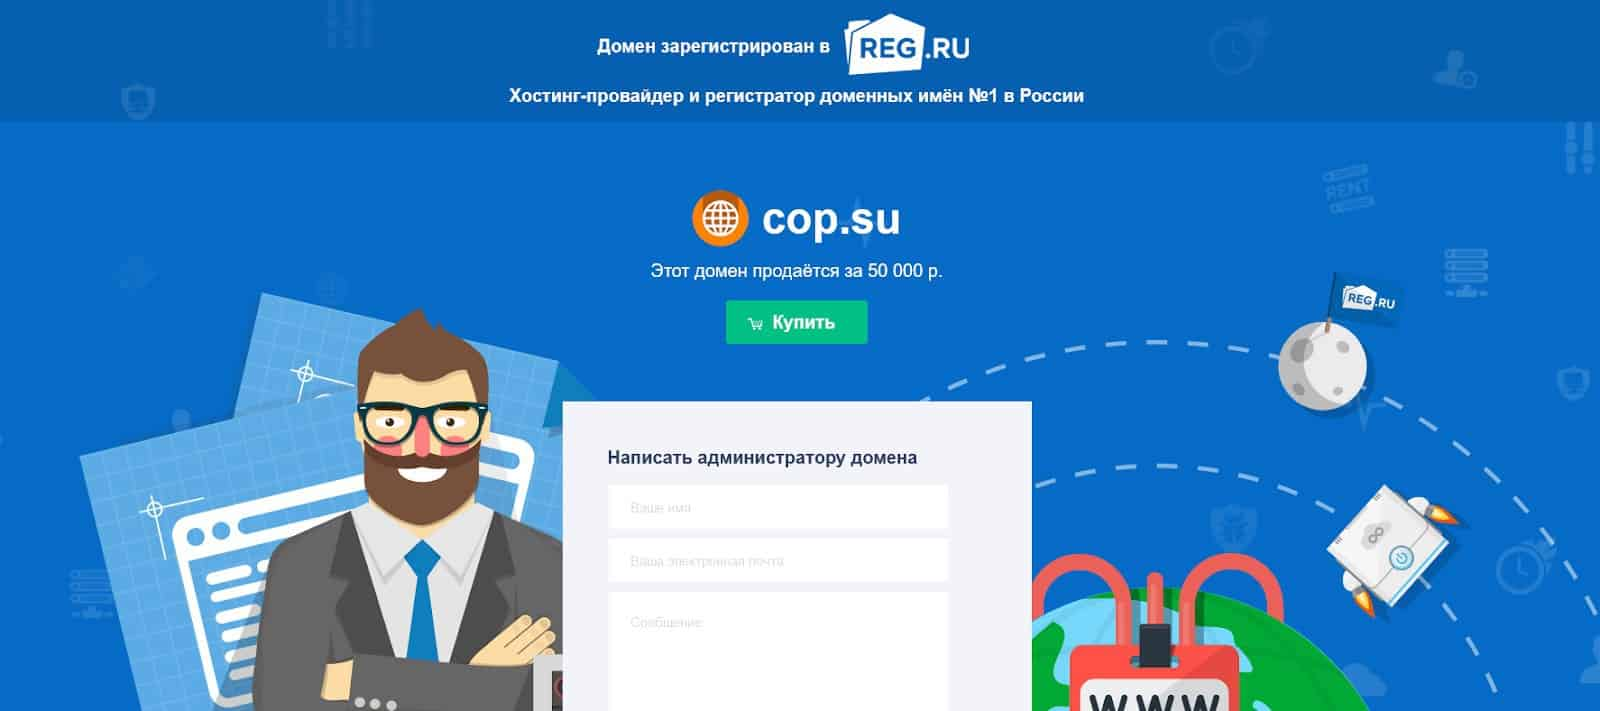 Figure 9. The domain of the once-active Russian-language forum COP.SU is now for sale